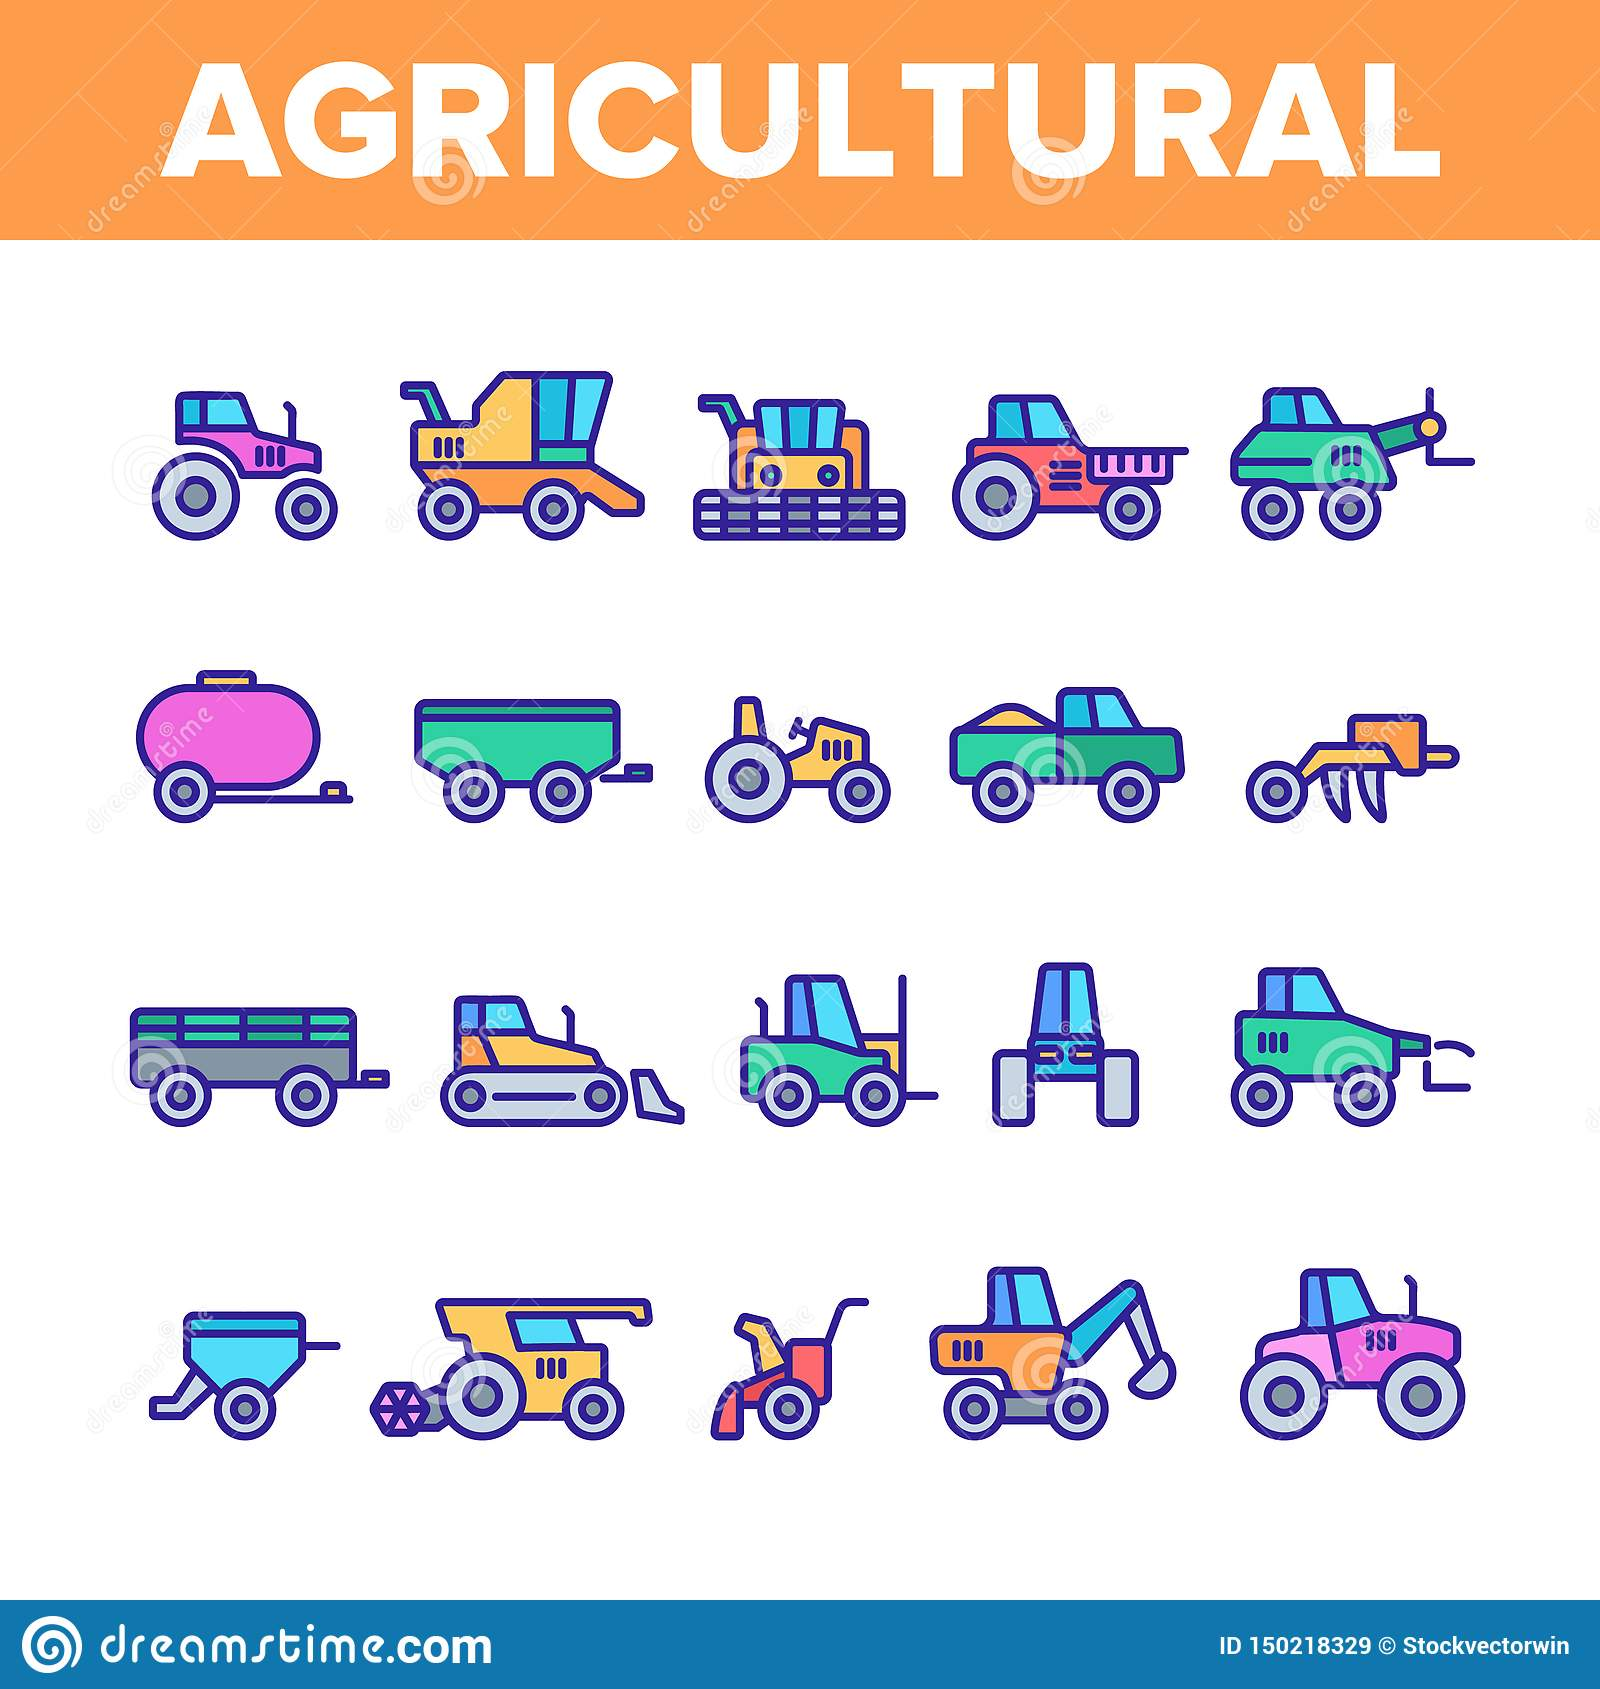 Agricultural Heavy Machinery Vector Linear Icons Set